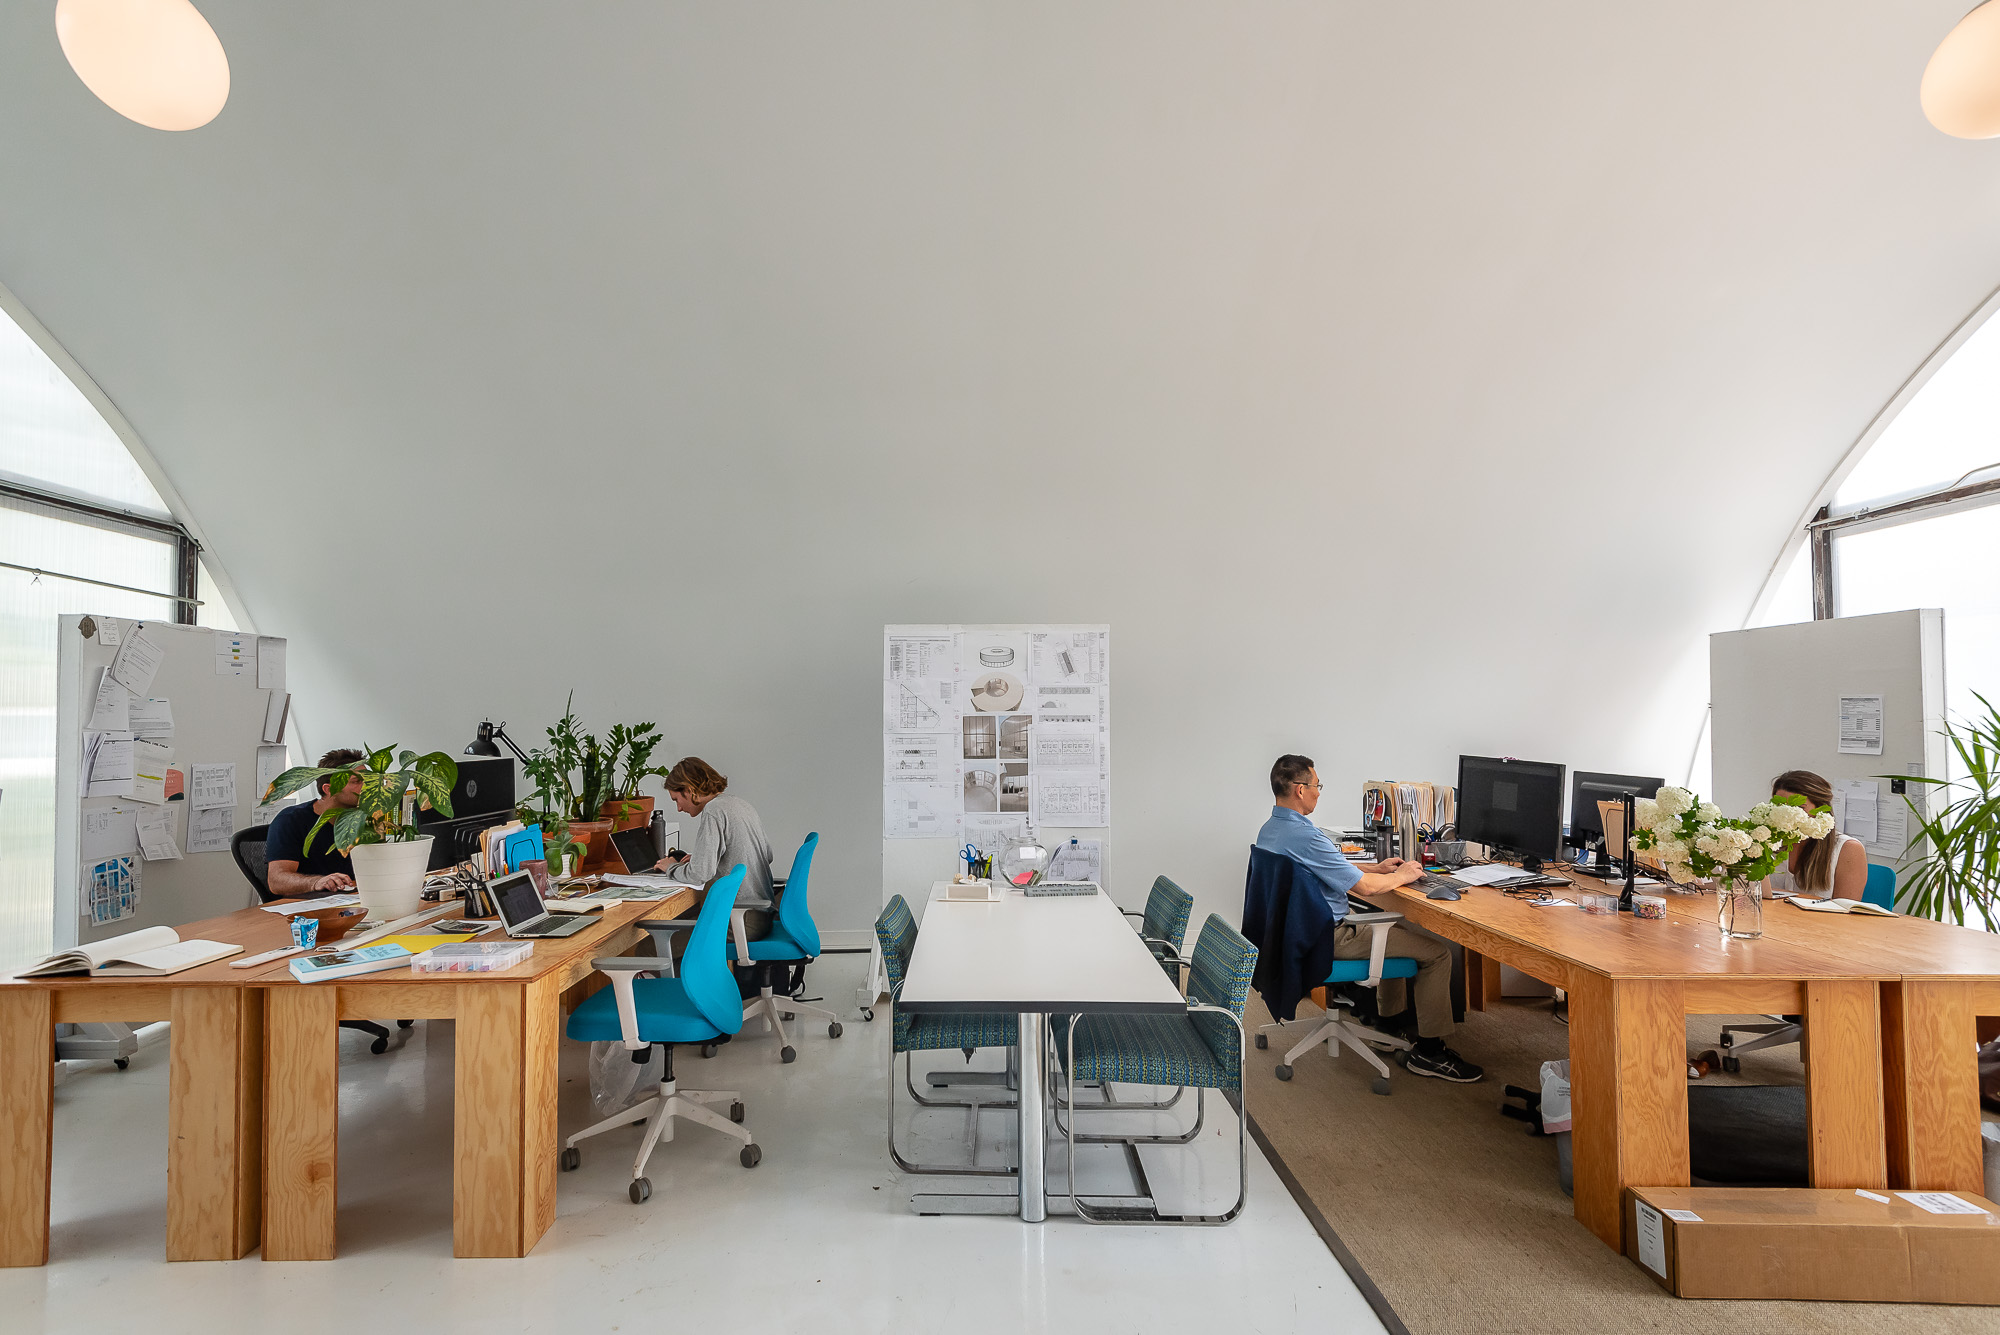 prince_concepts_office_hut_spring-11.jpg